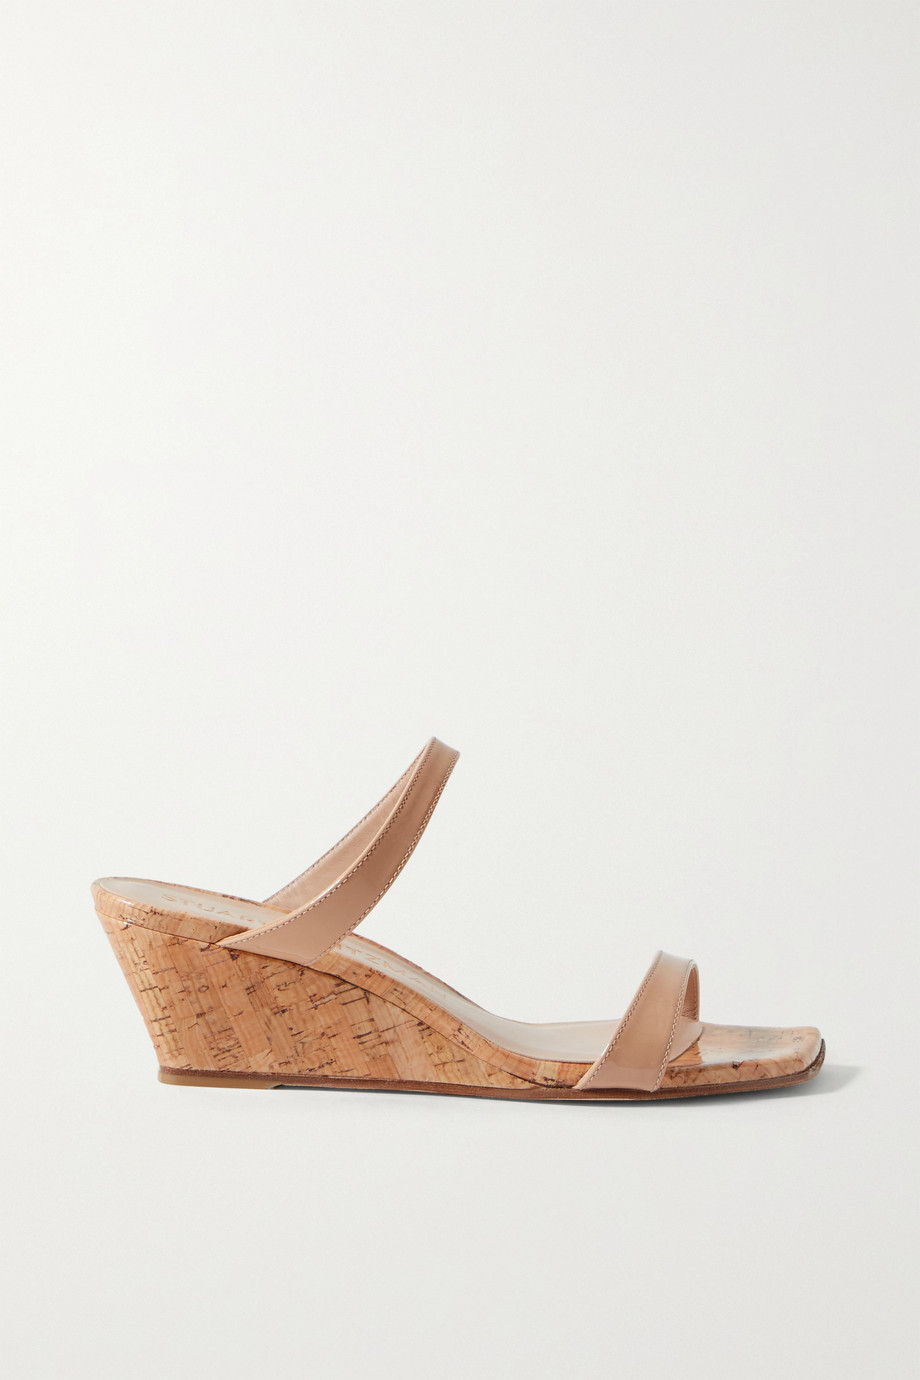 STUART WEITZMAN Aleena patent-leather wedge sandals